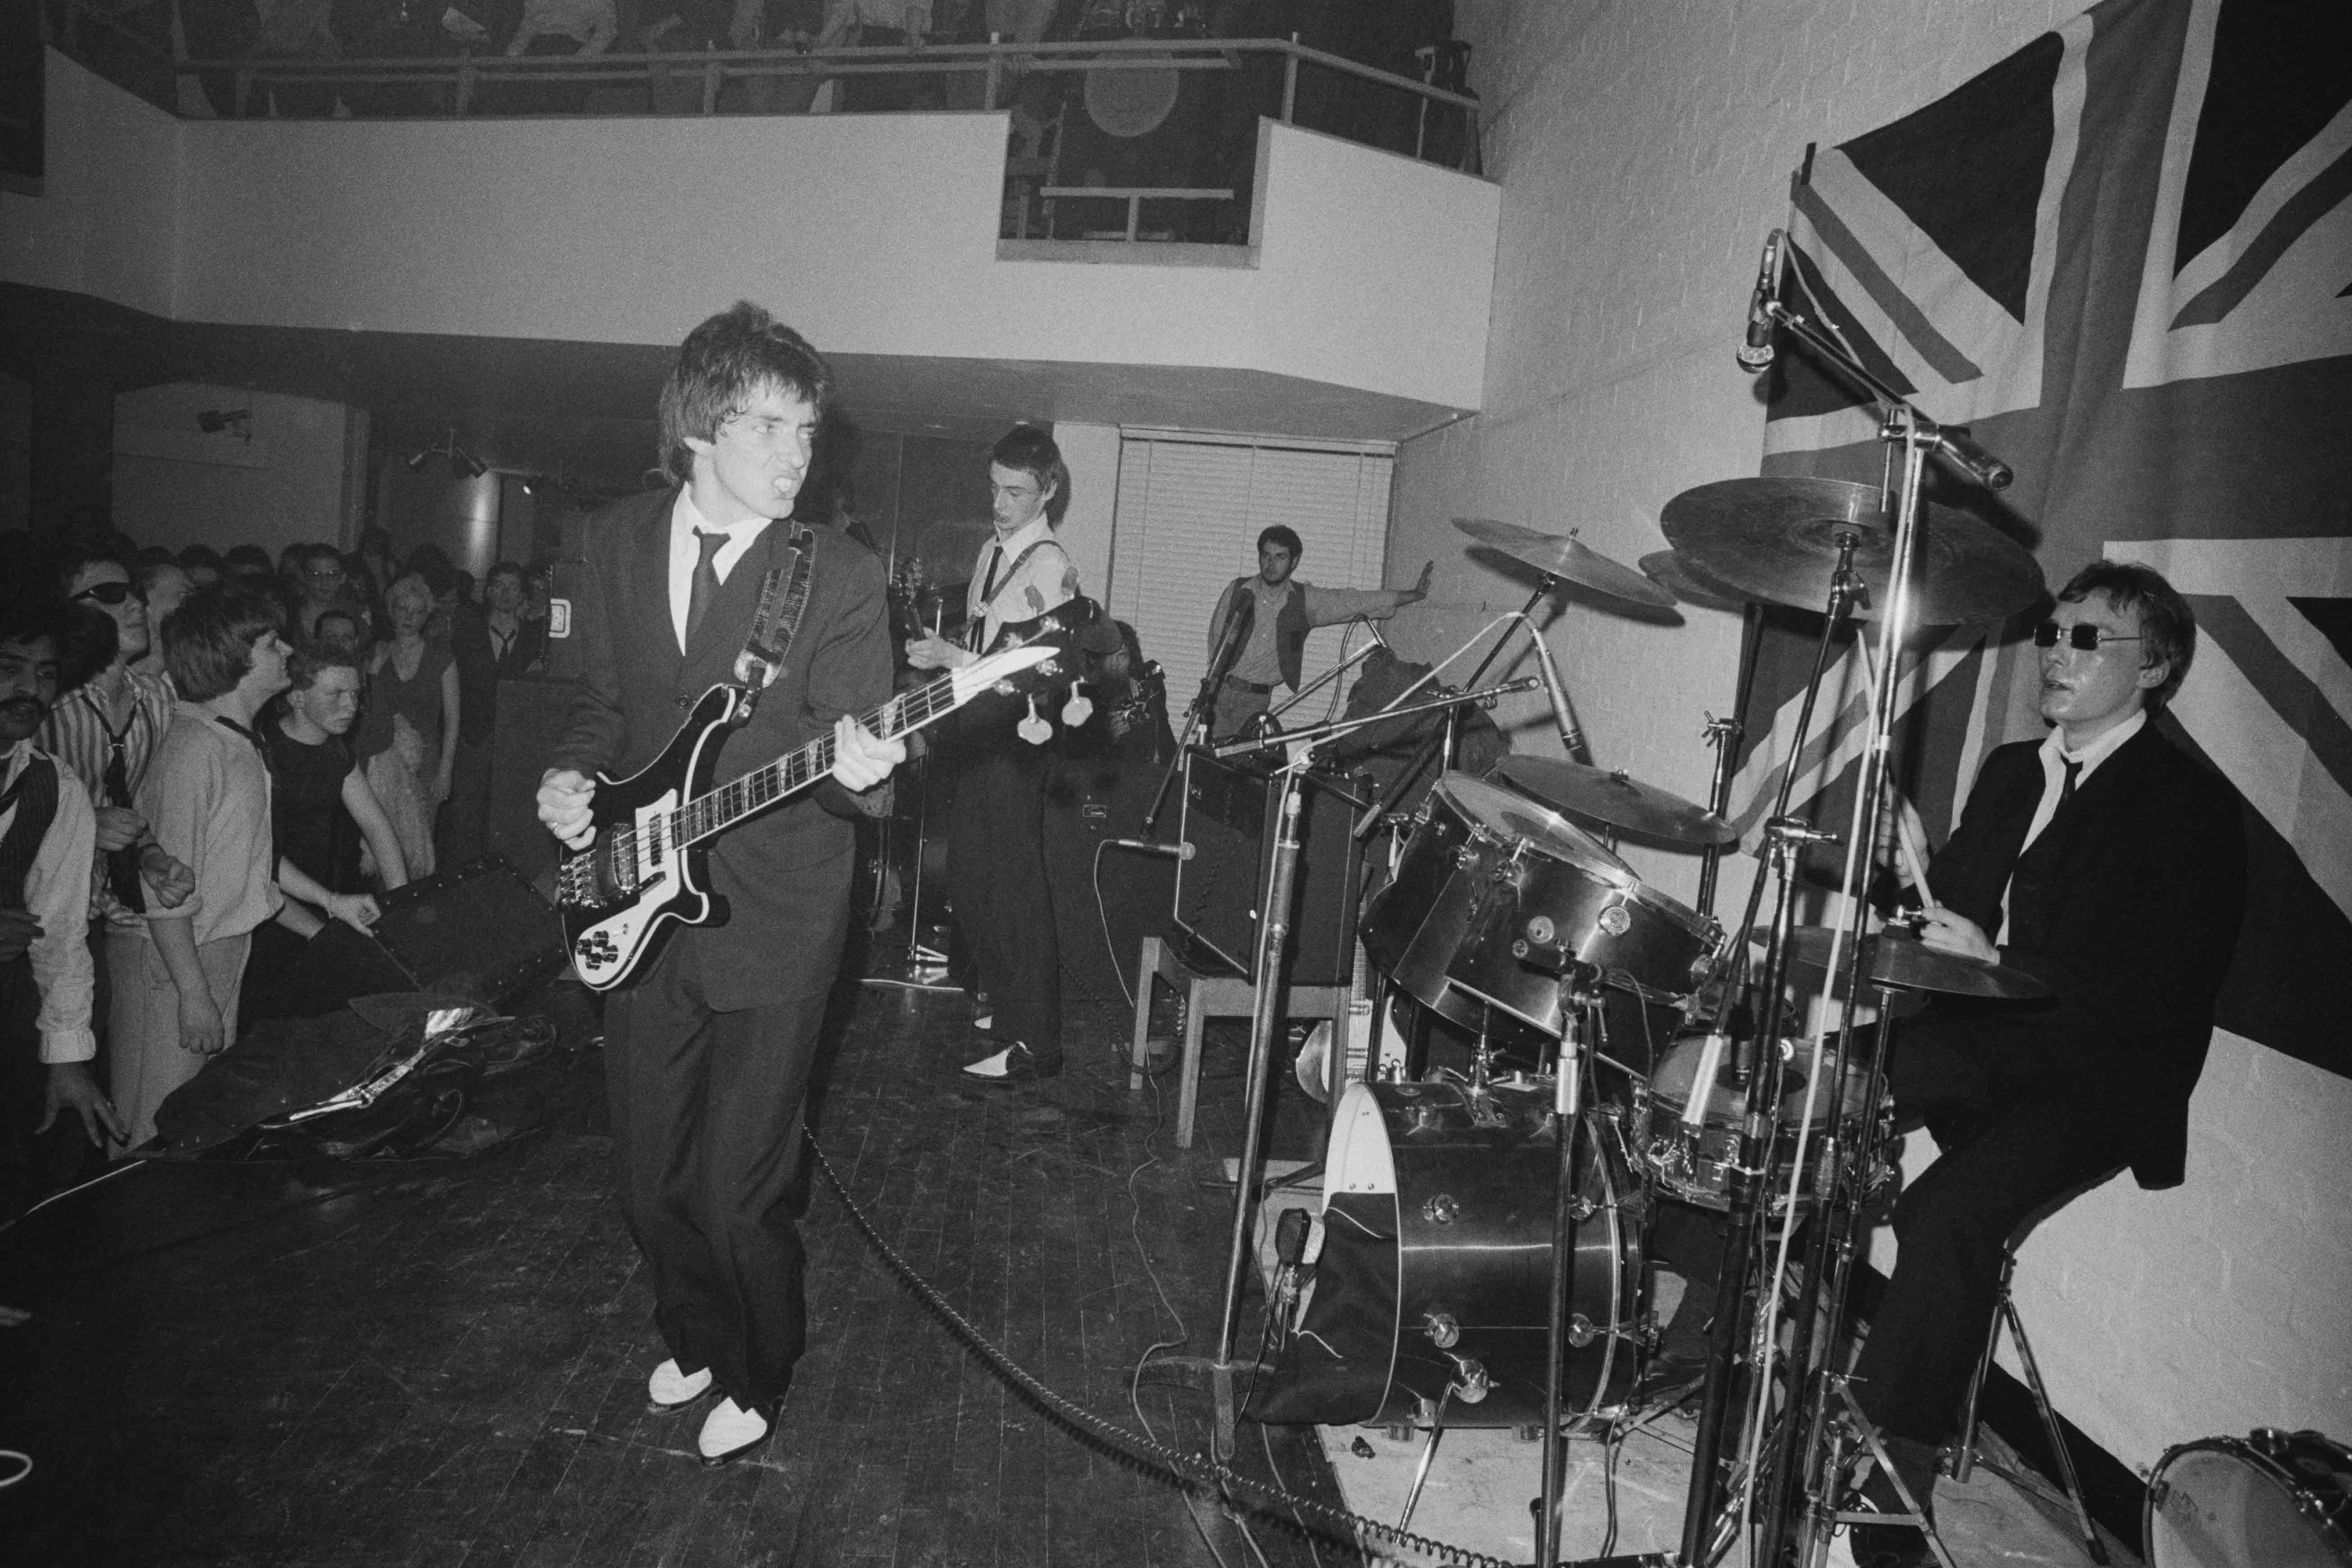 29 April 1977: The Jam on stage at the Royal College of Art in London, England, in front of a large Union Jack flag. (Photograph by Erica Echenberg/Redferns)